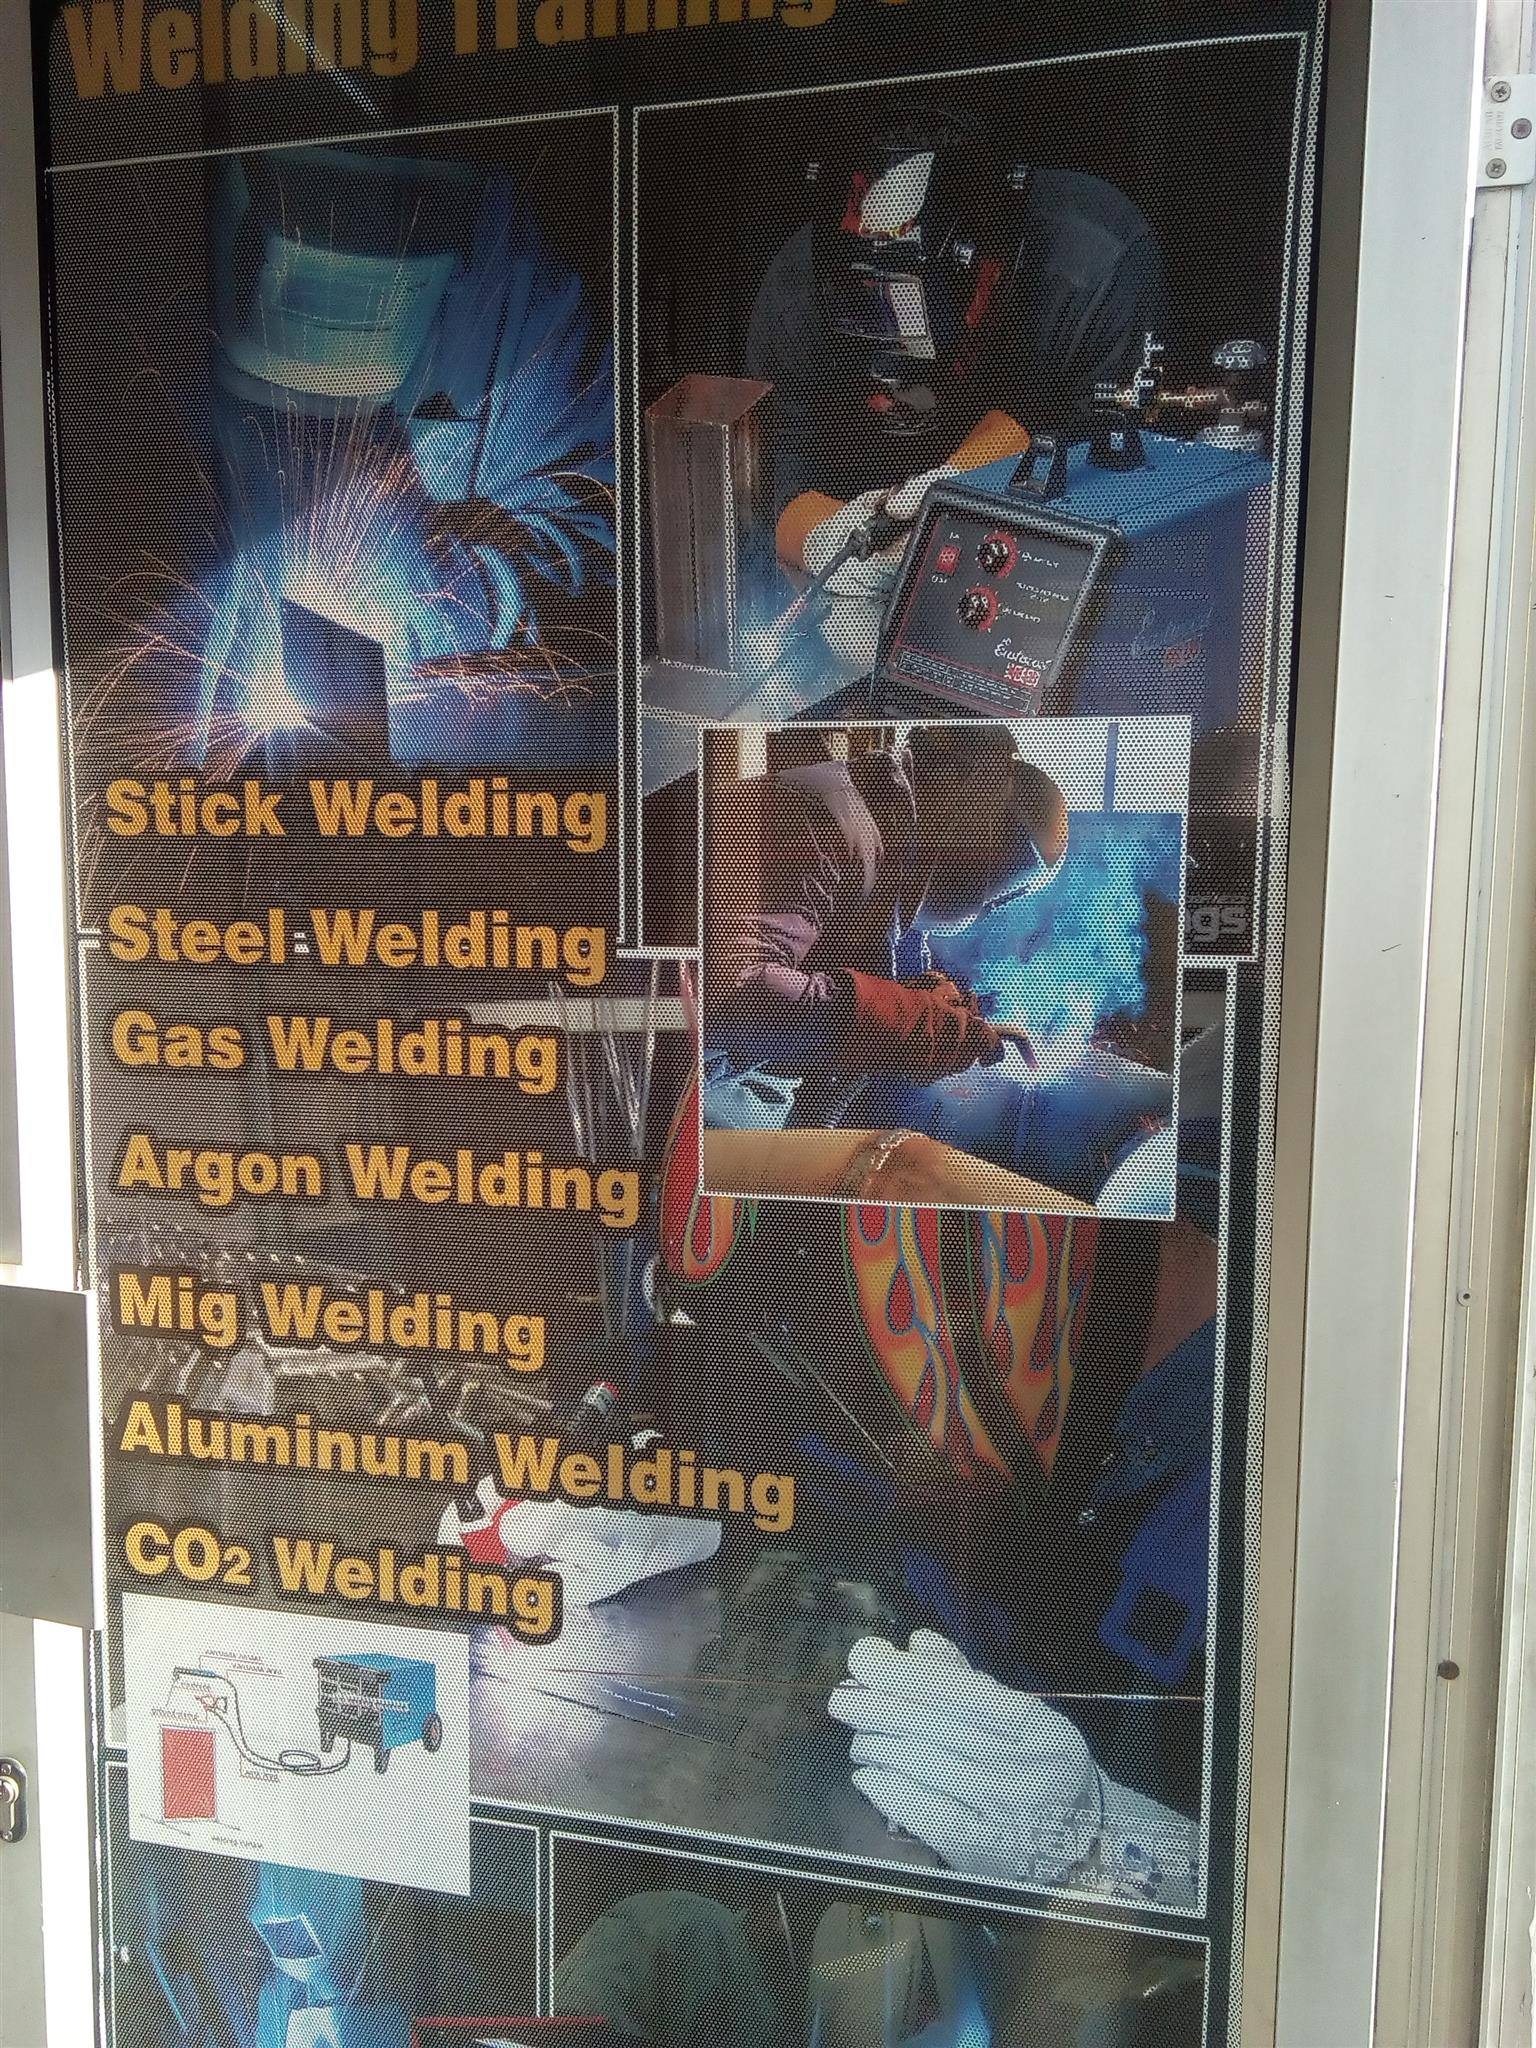 fitter and turnner,co2,pipe fitting,stick,argon,welding training center 0736731478/0110498922